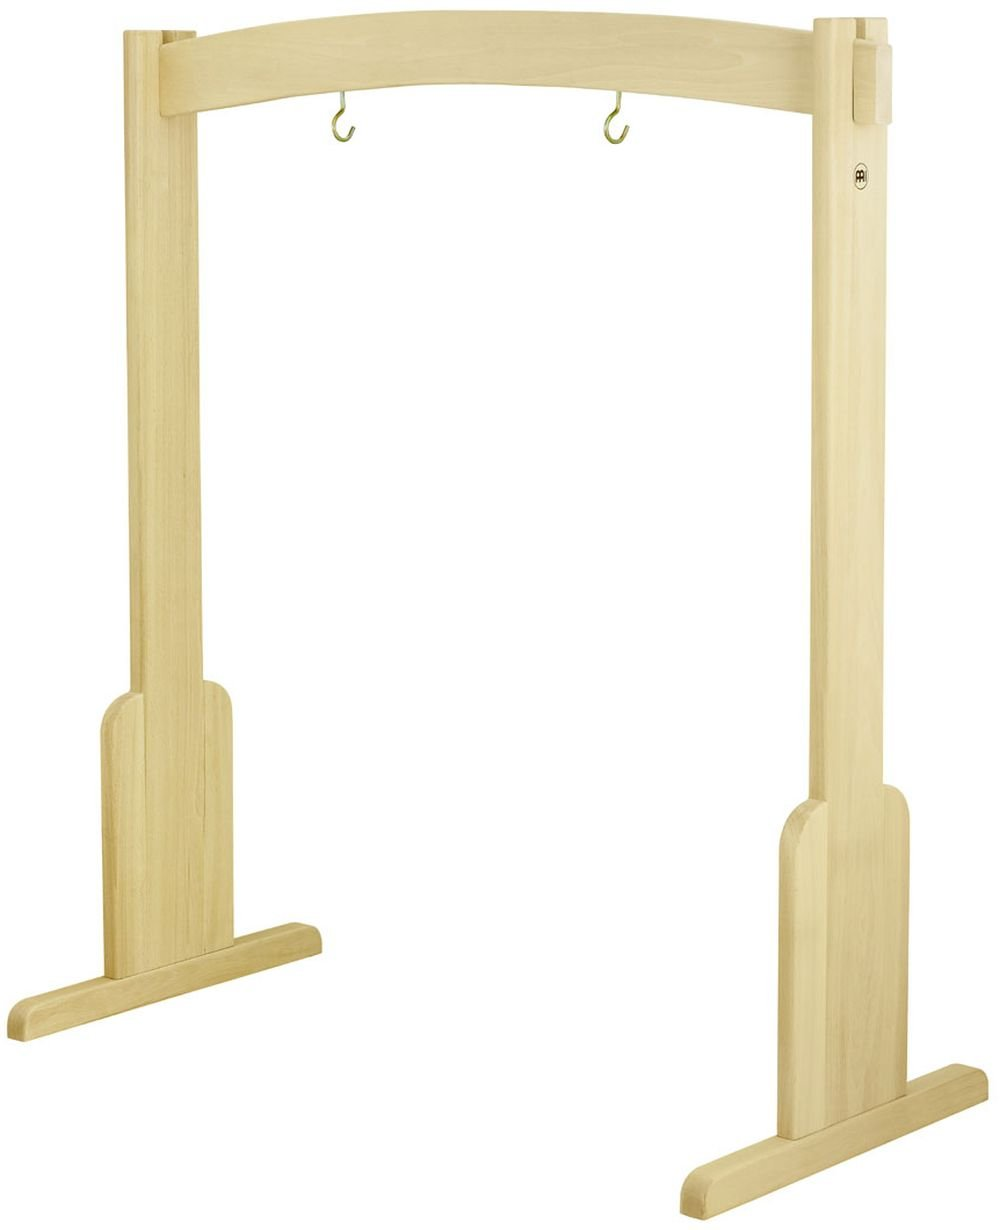 Meinl Percussion TMWGS-L Beech Wood Gong Stand, Large Meinl USA L.C.